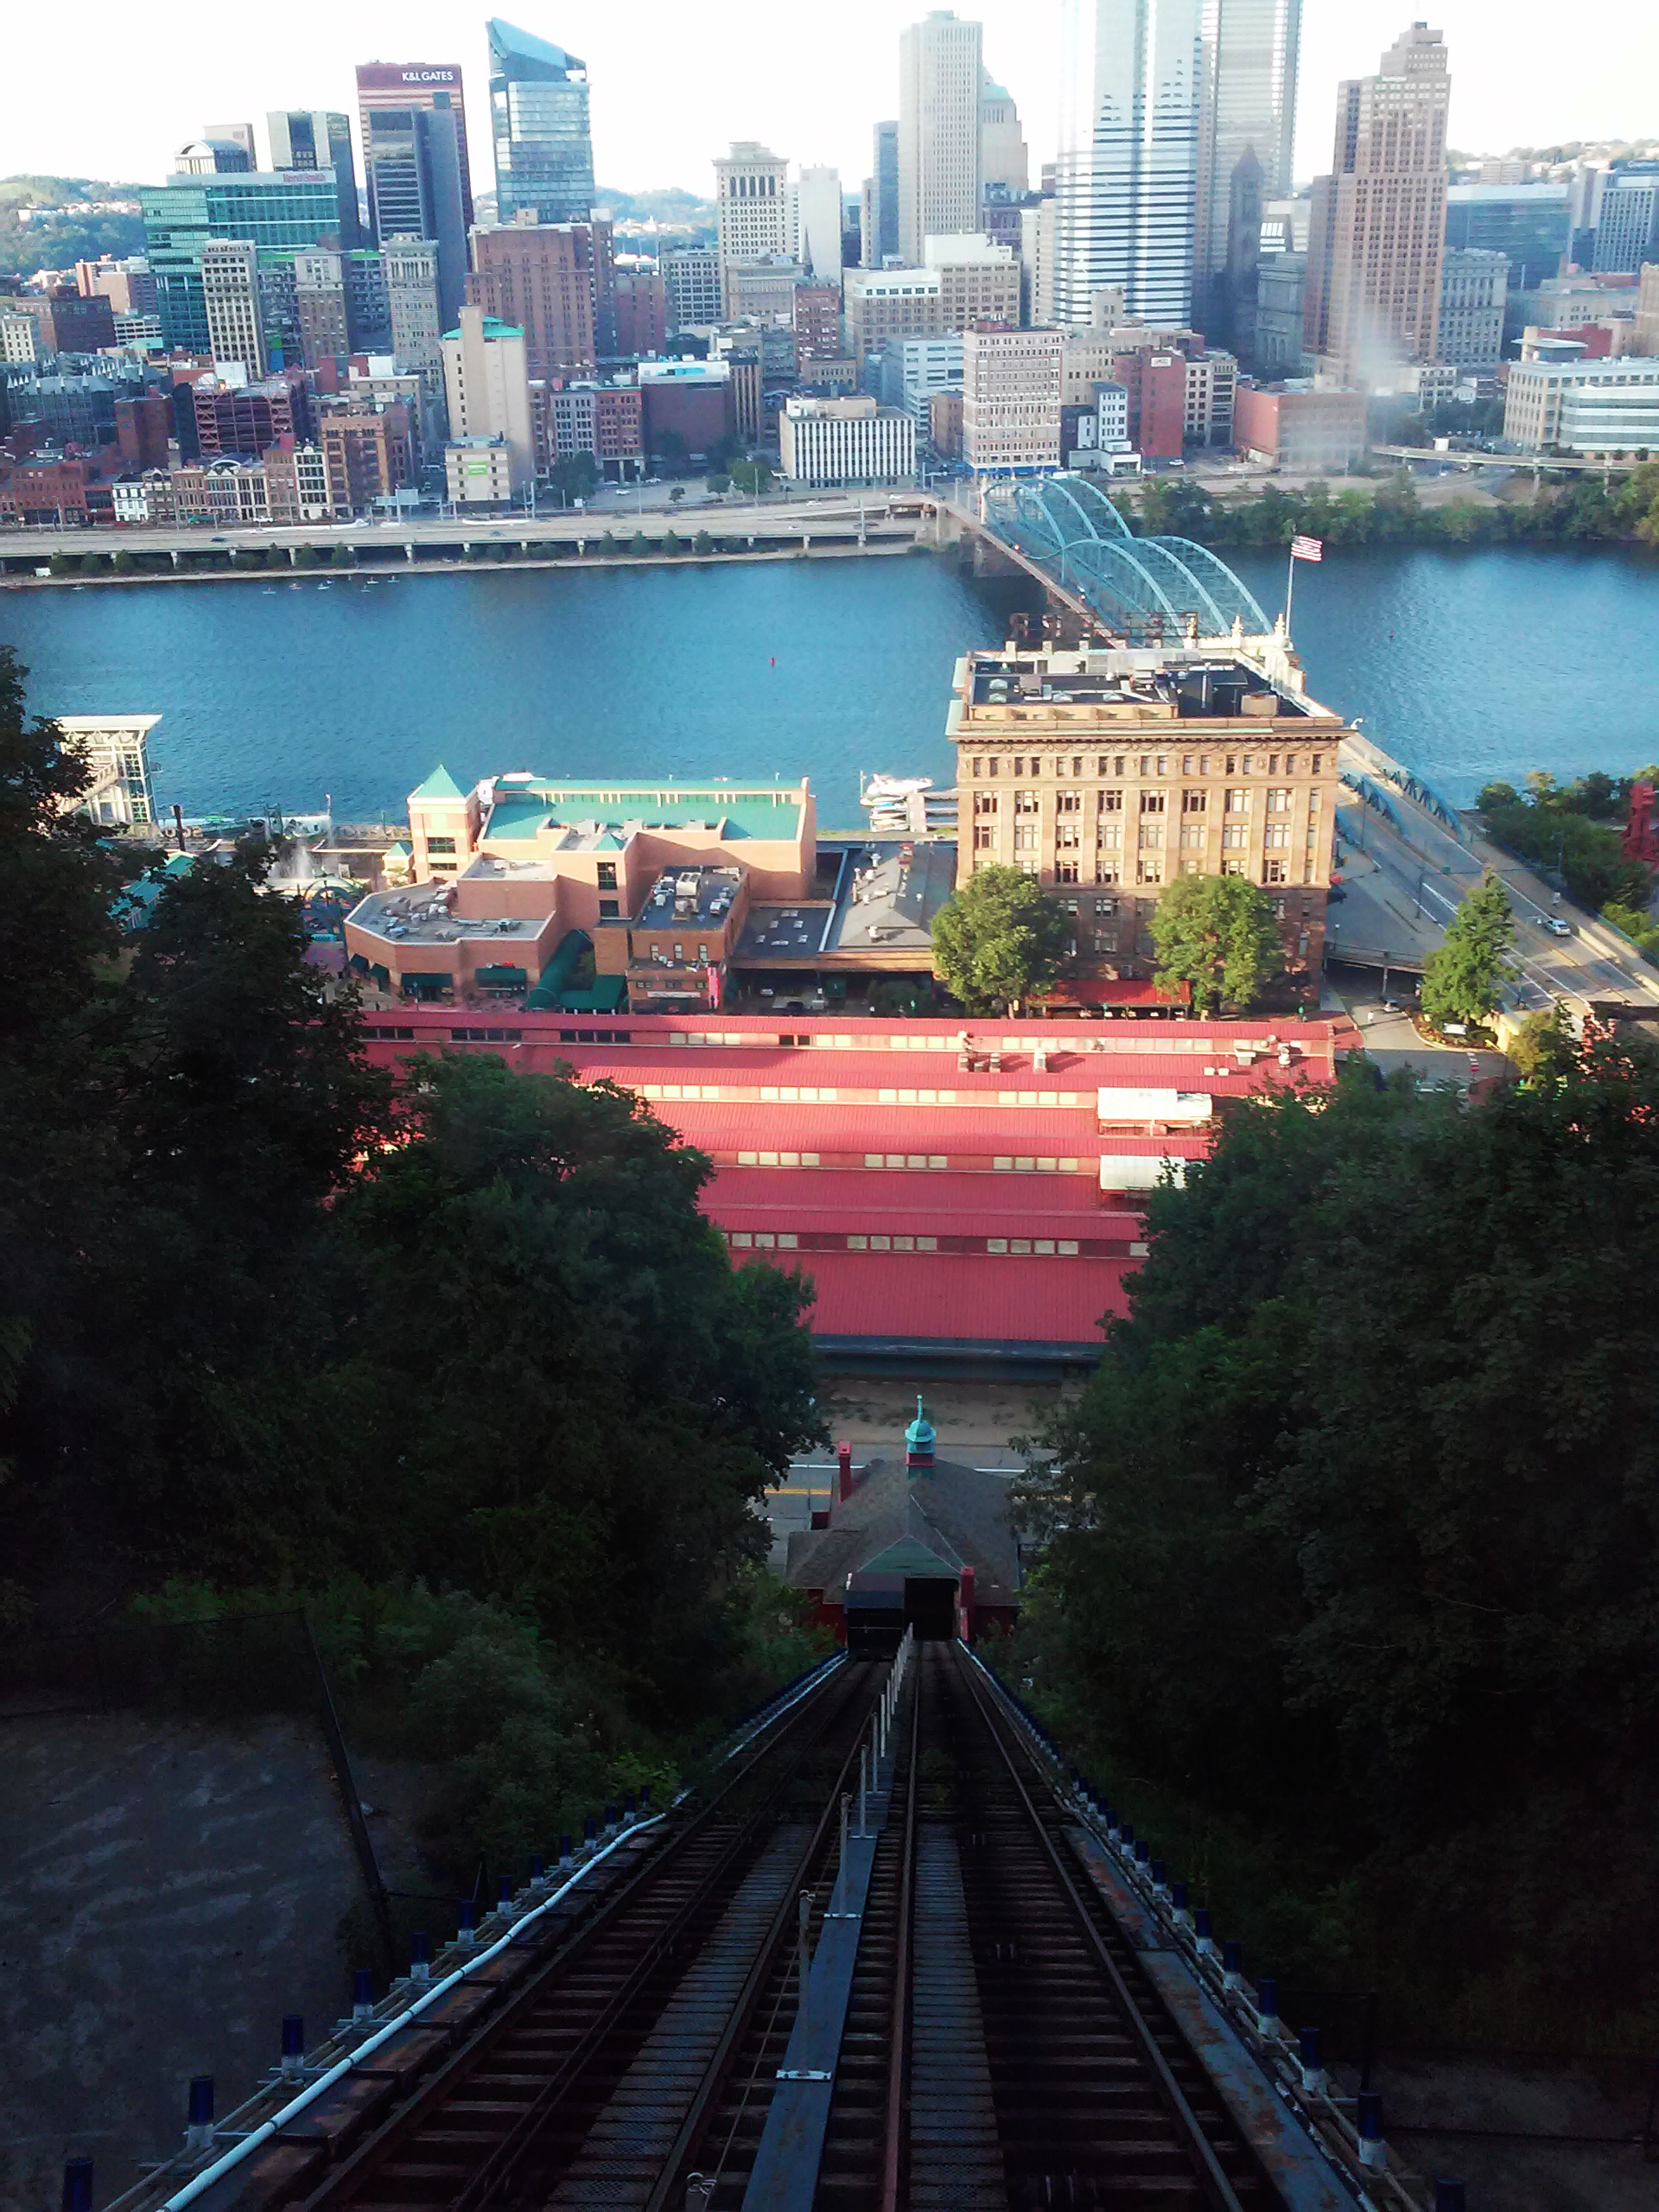 Mount Washington Incline